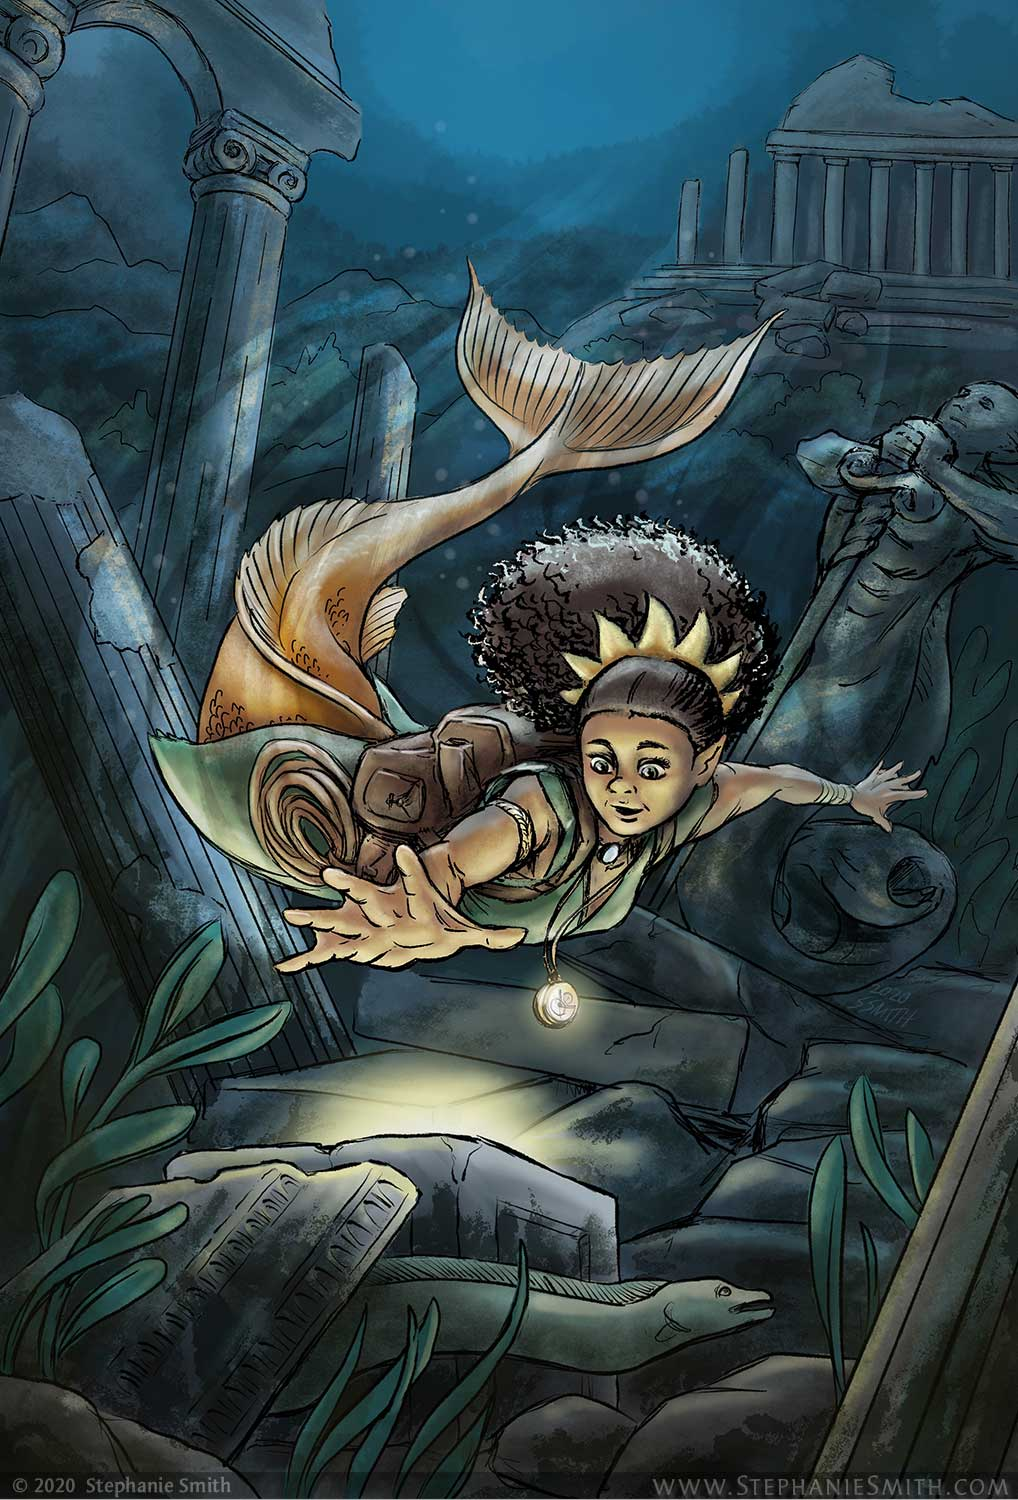 Painting of a mermaid reaching for a glowing artifact hidden in ancient ruins